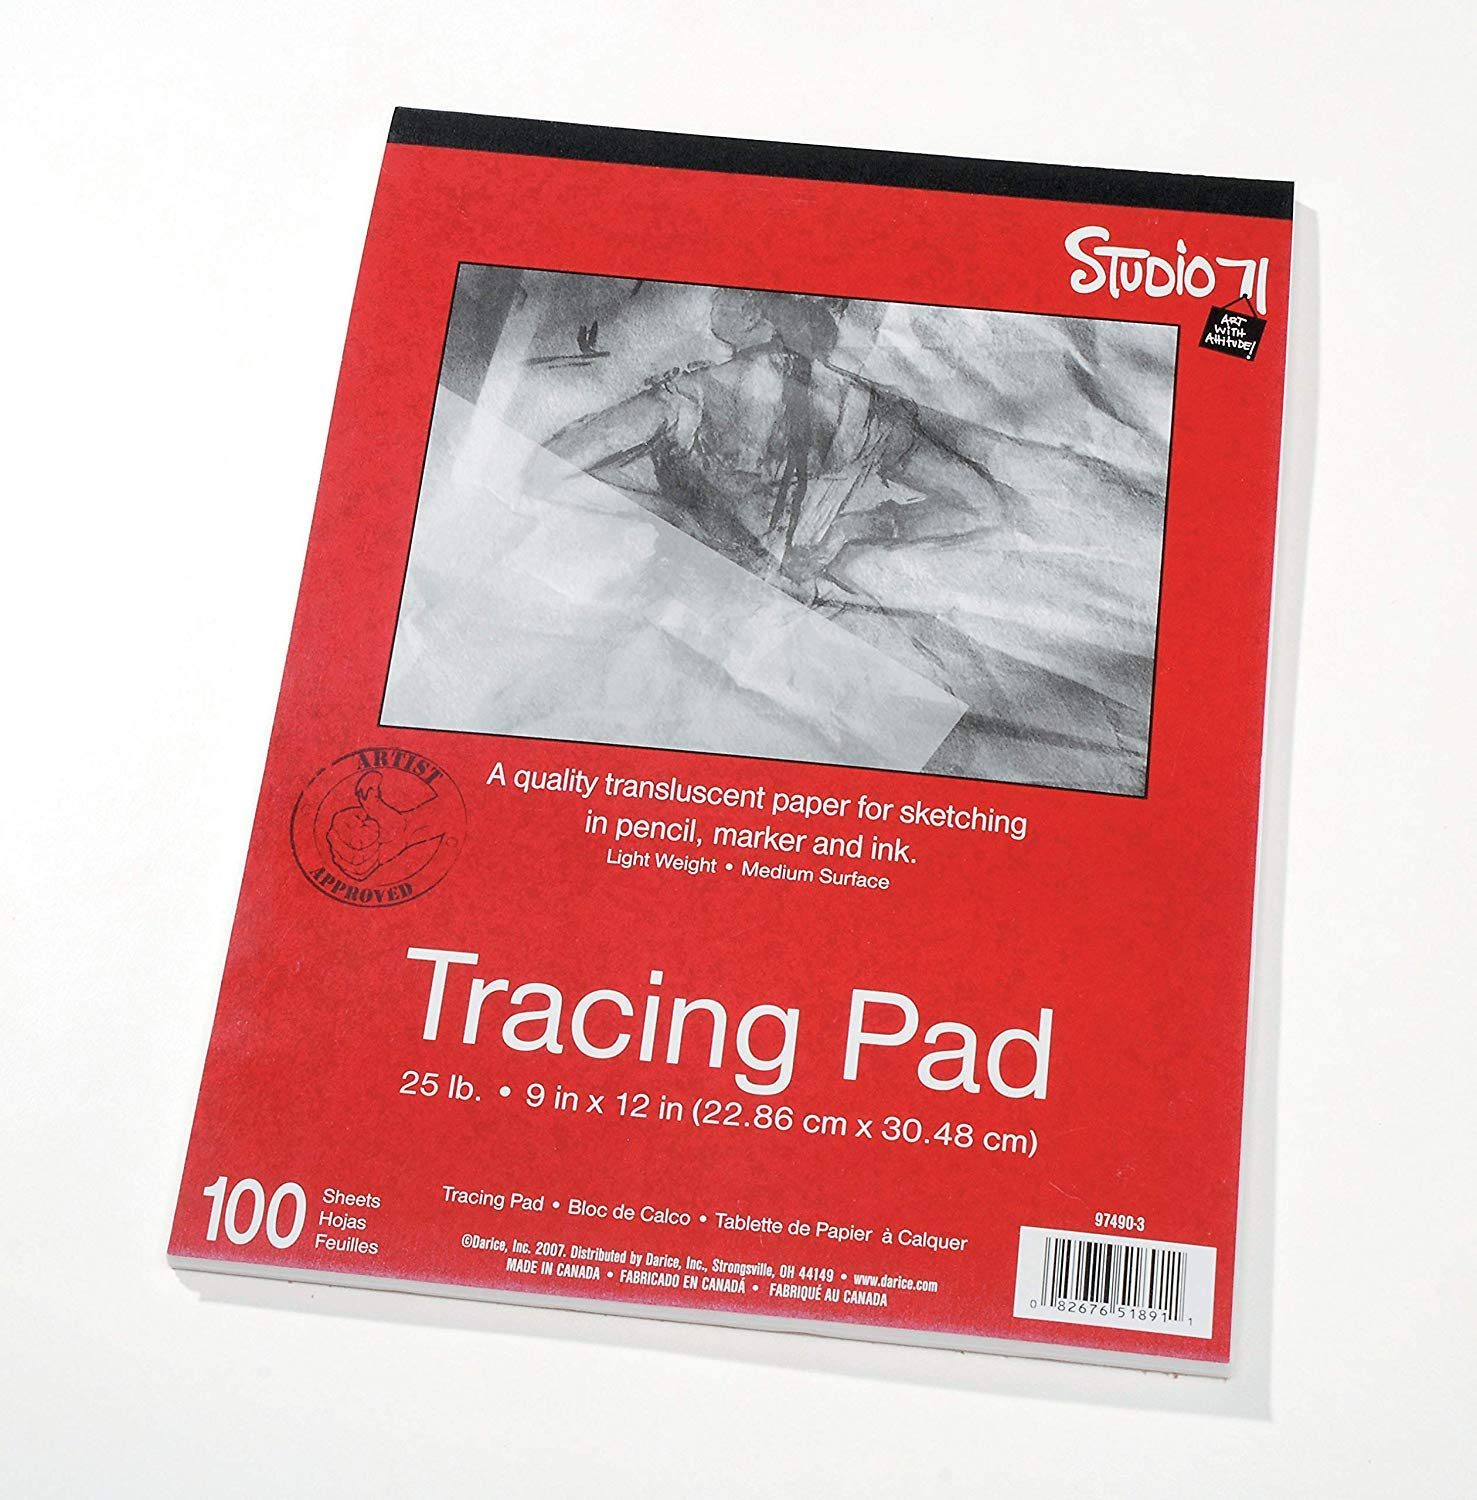 Darice 9''x12'' Artist's Tracing Paper, 100 Sheets - Translucent Tracing Paper for Pencil, Marker and Ink, Lightweight, Medium Surface (97490-3) (2 Pack) by Darice